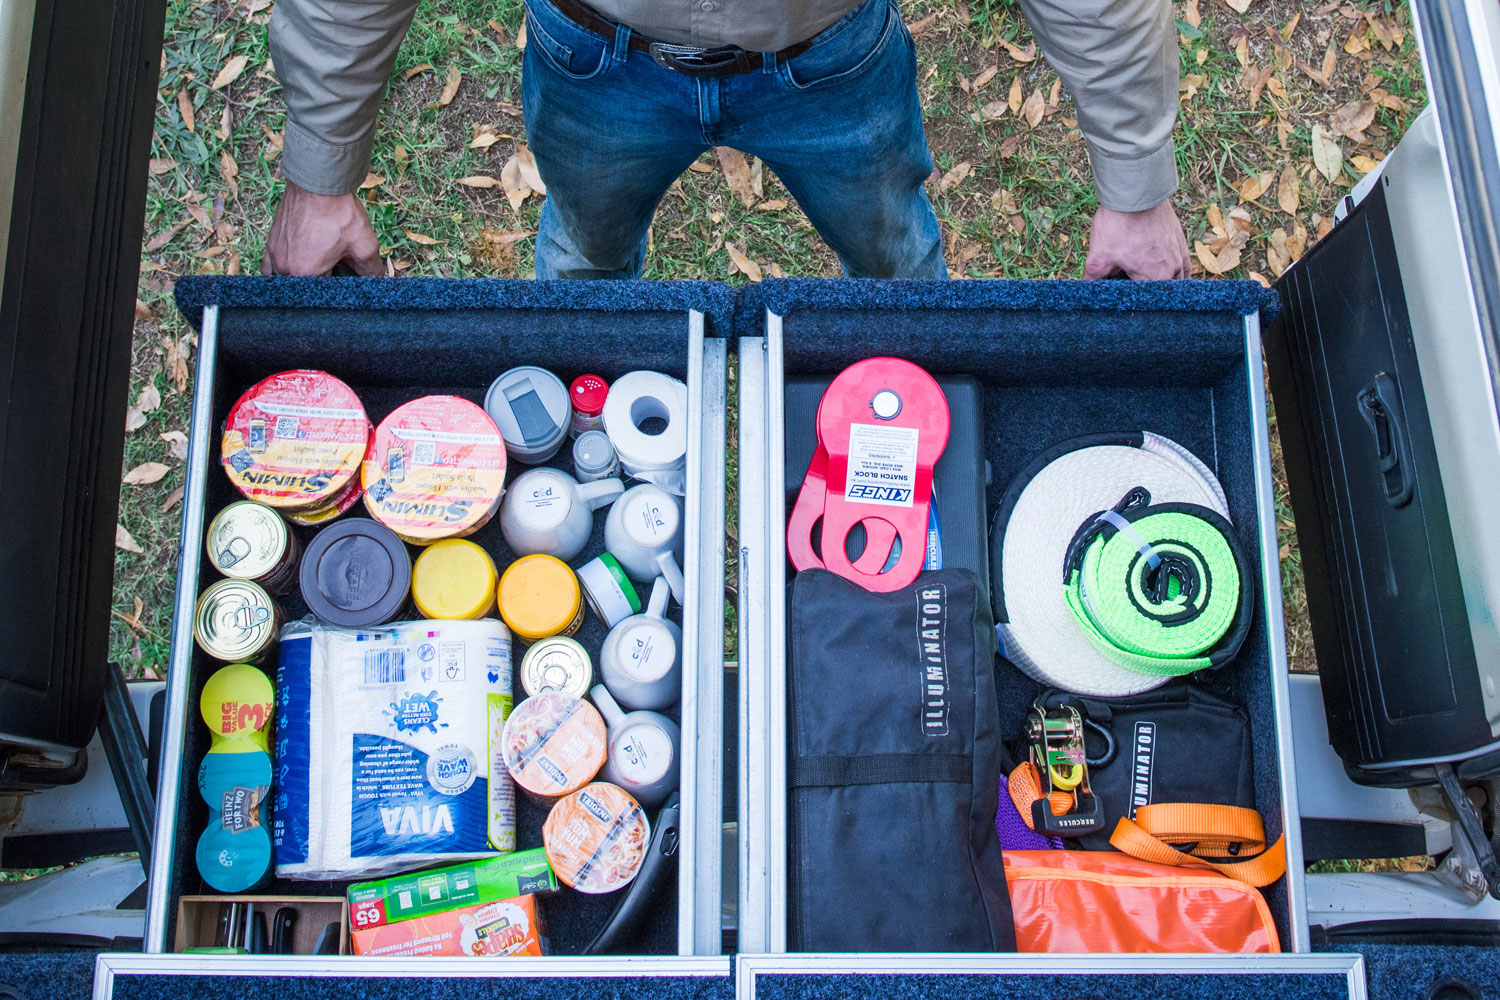 SUMMER CAMPING ORGANISATION - image titan-drawers-new-6 on https://www.4wdsupacentre.com.au/news